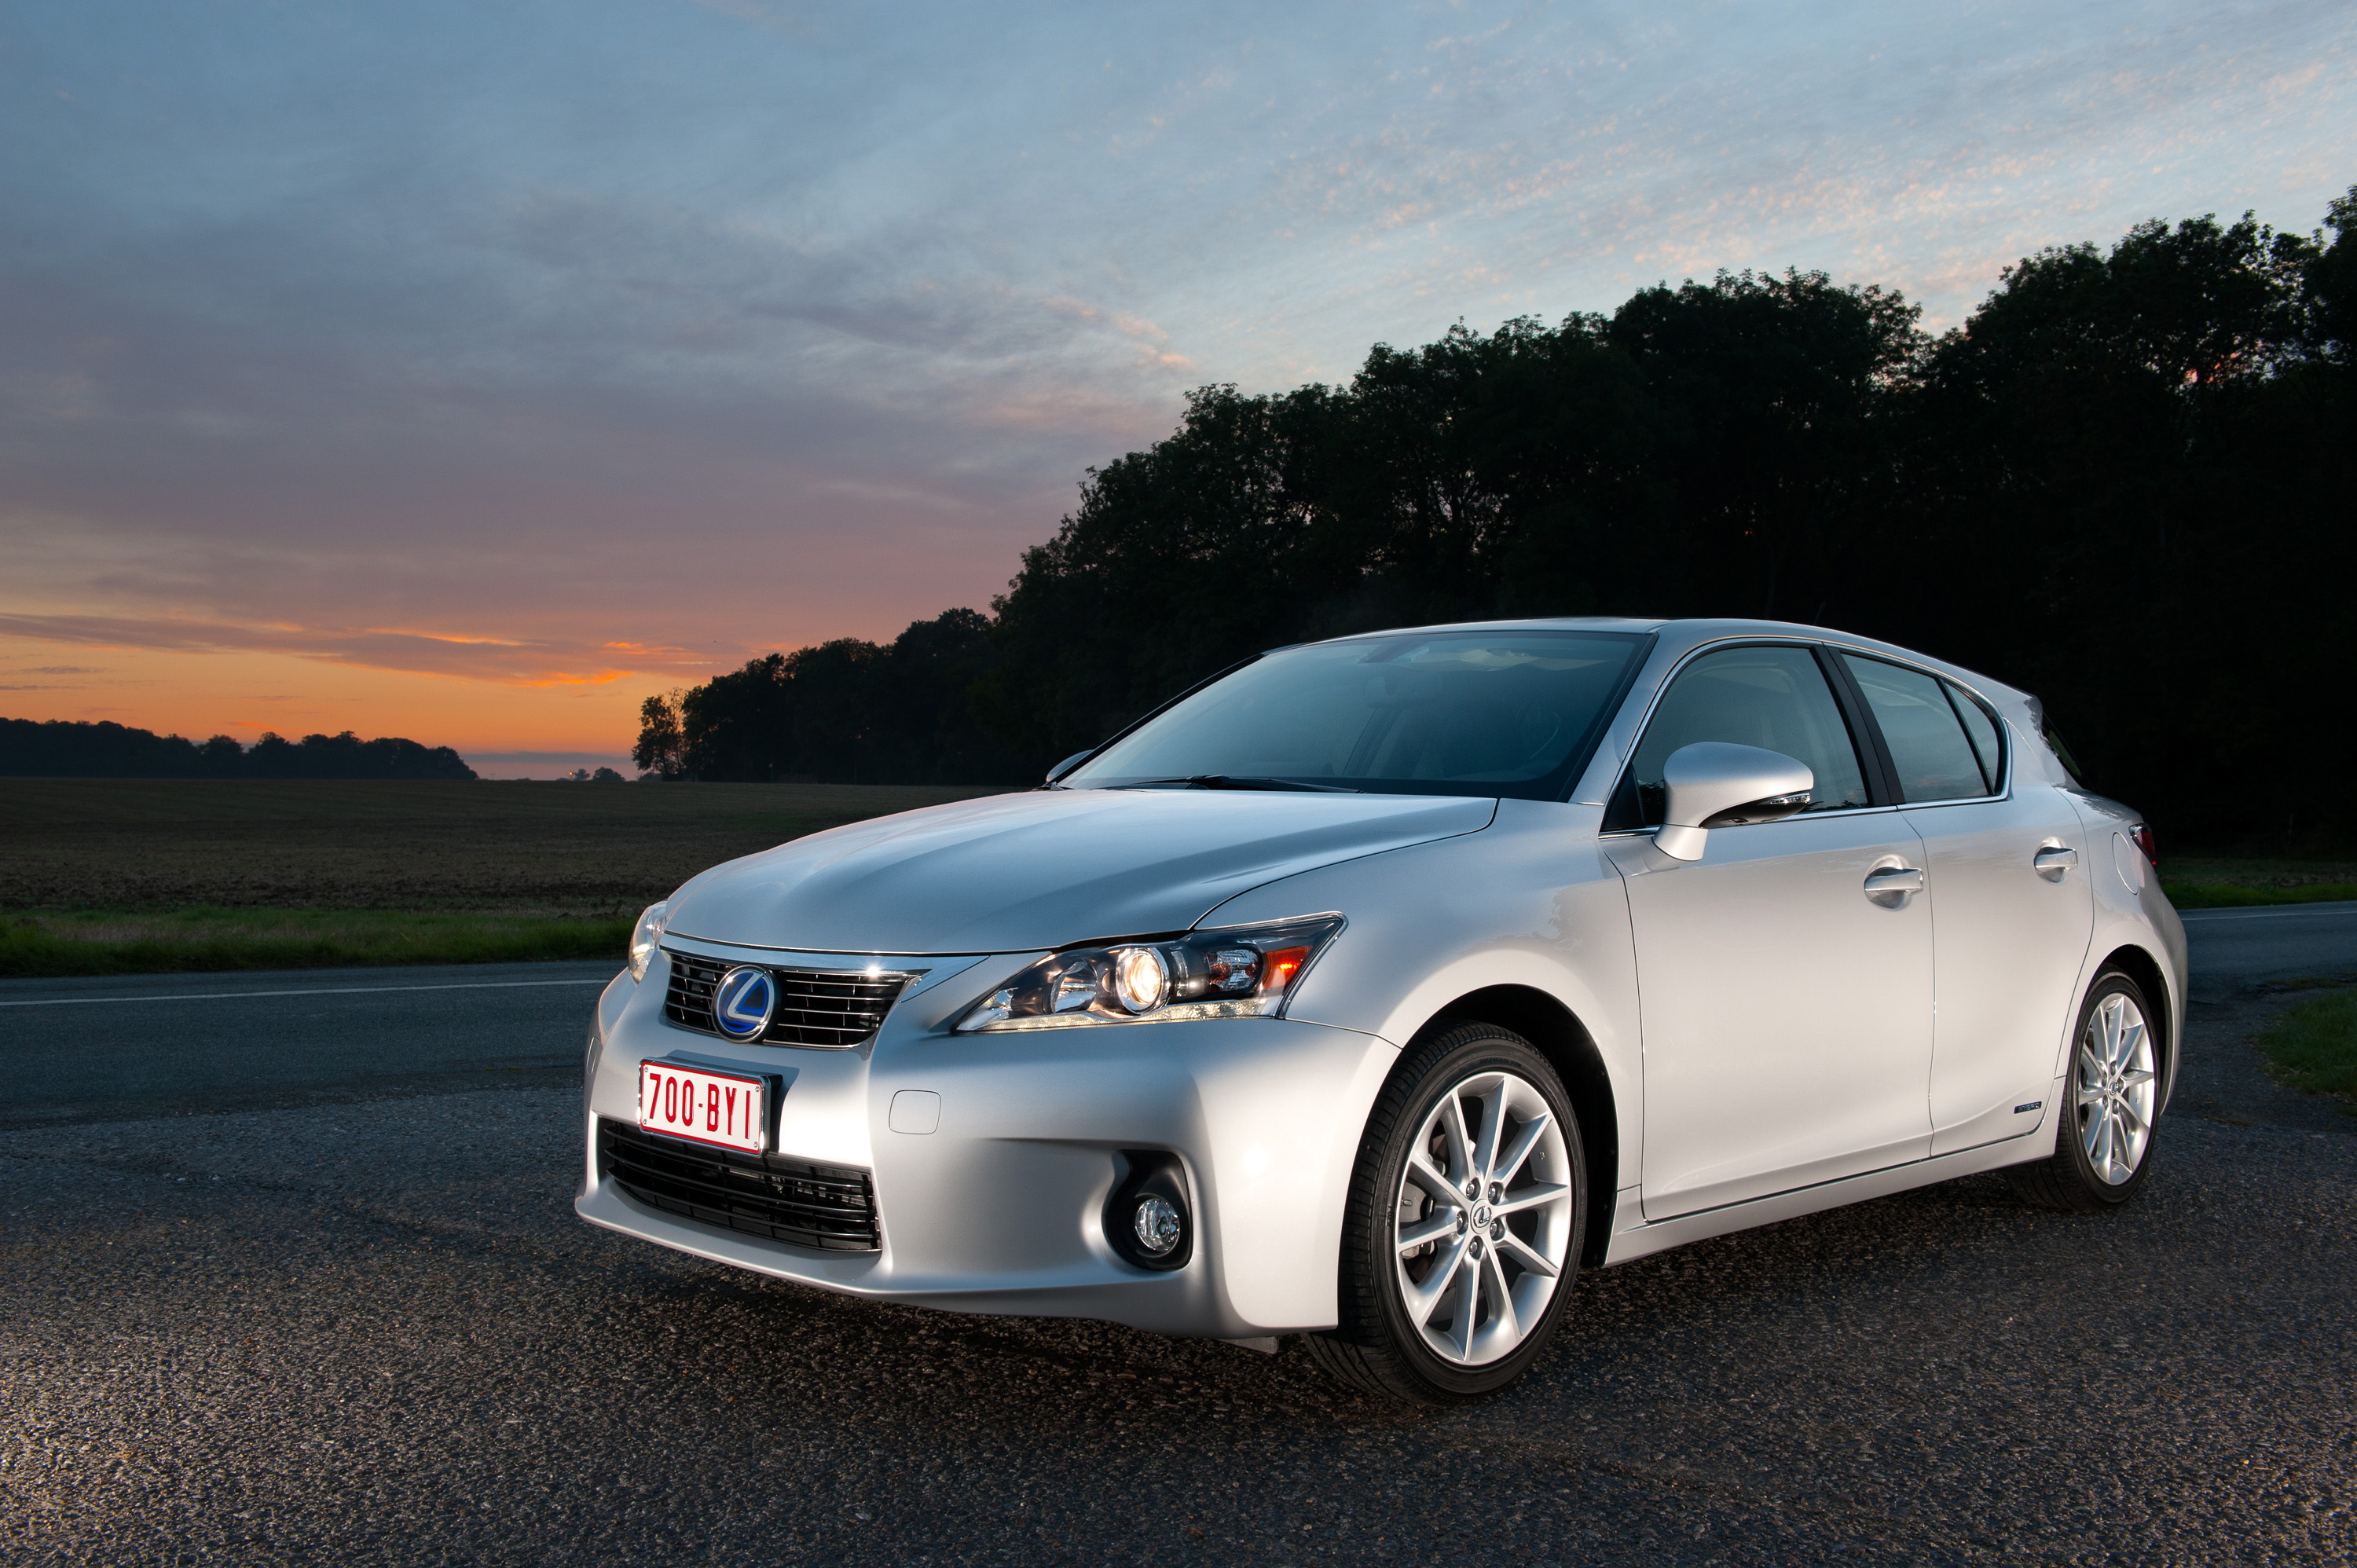 auto pictures com ct and specs gallery database photo lexus information